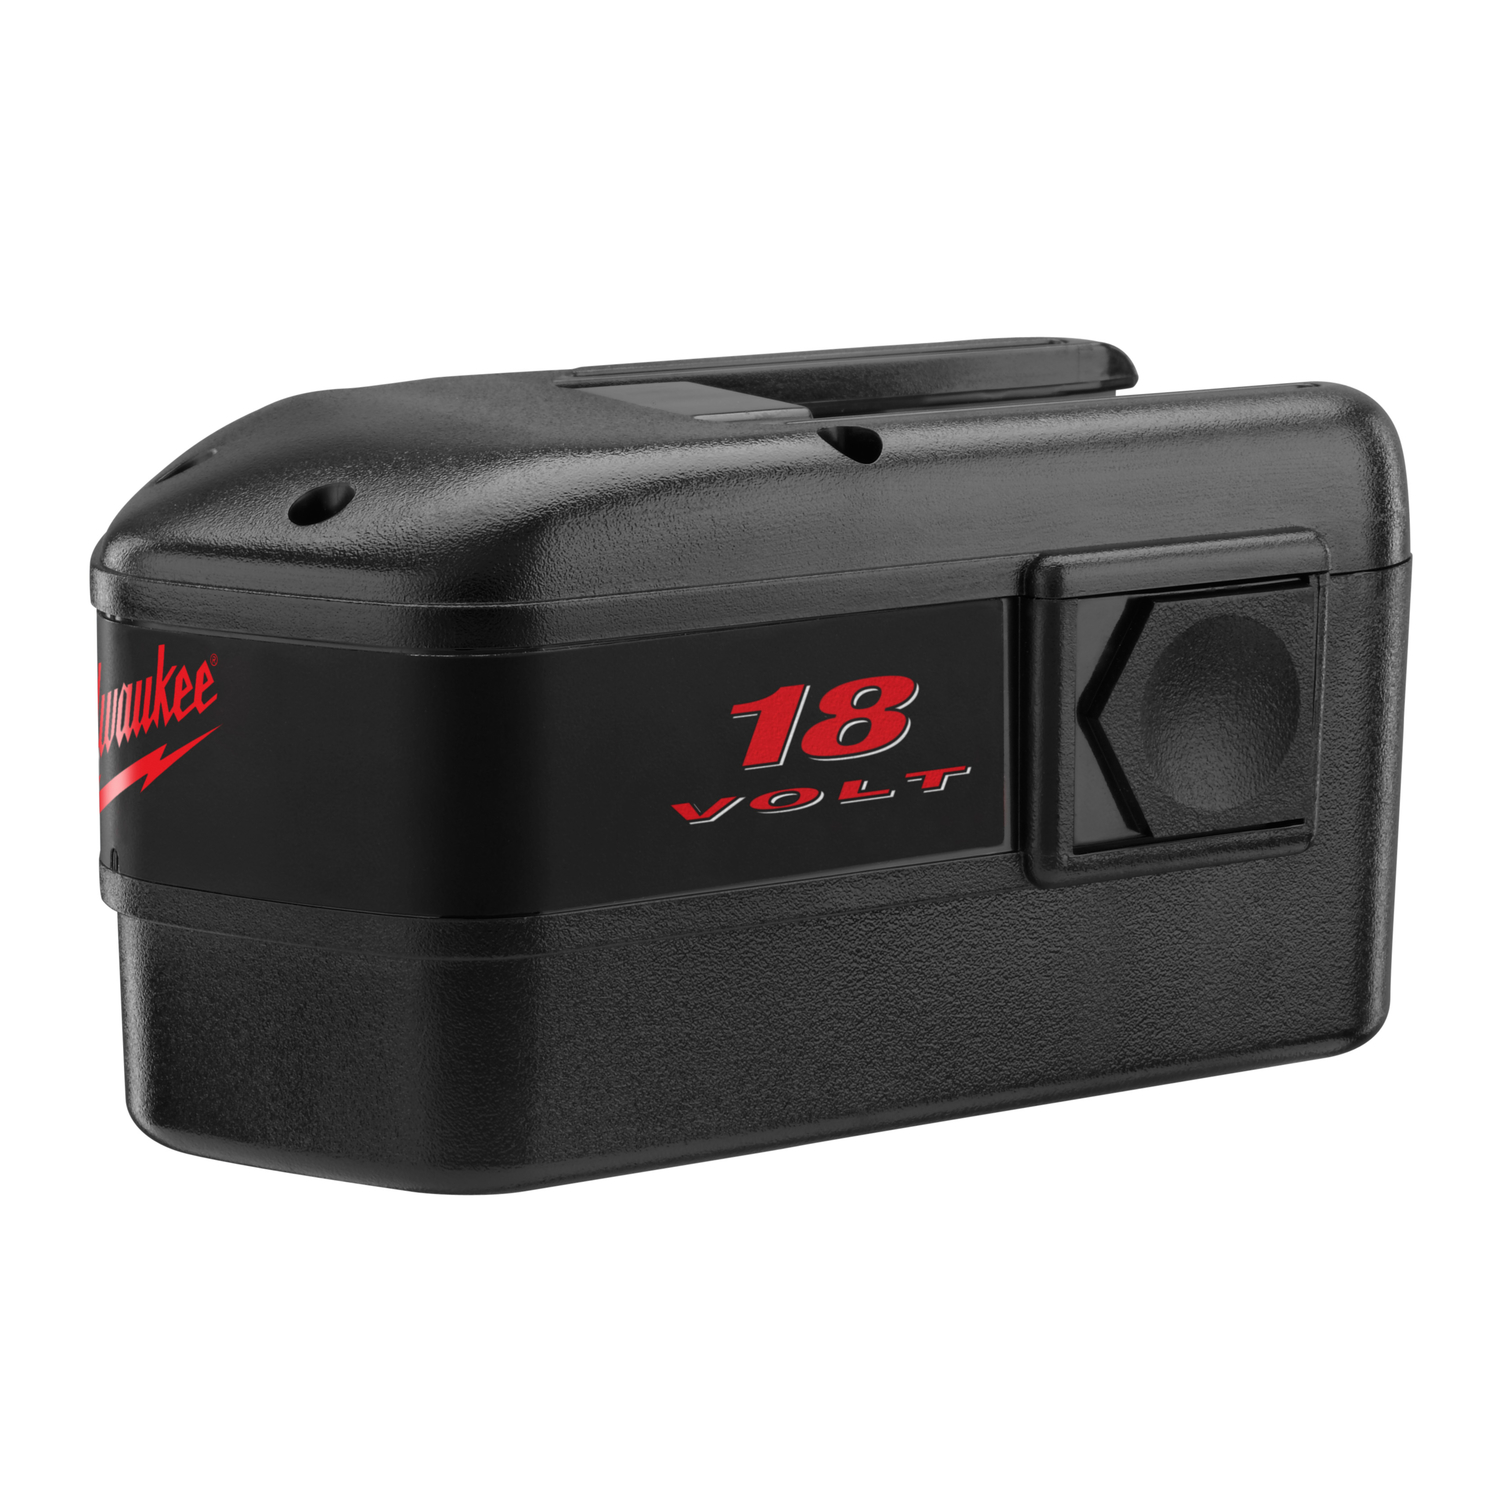 Milwaukee  18 volt Ni-Cad  Battery Pack  1 pc.